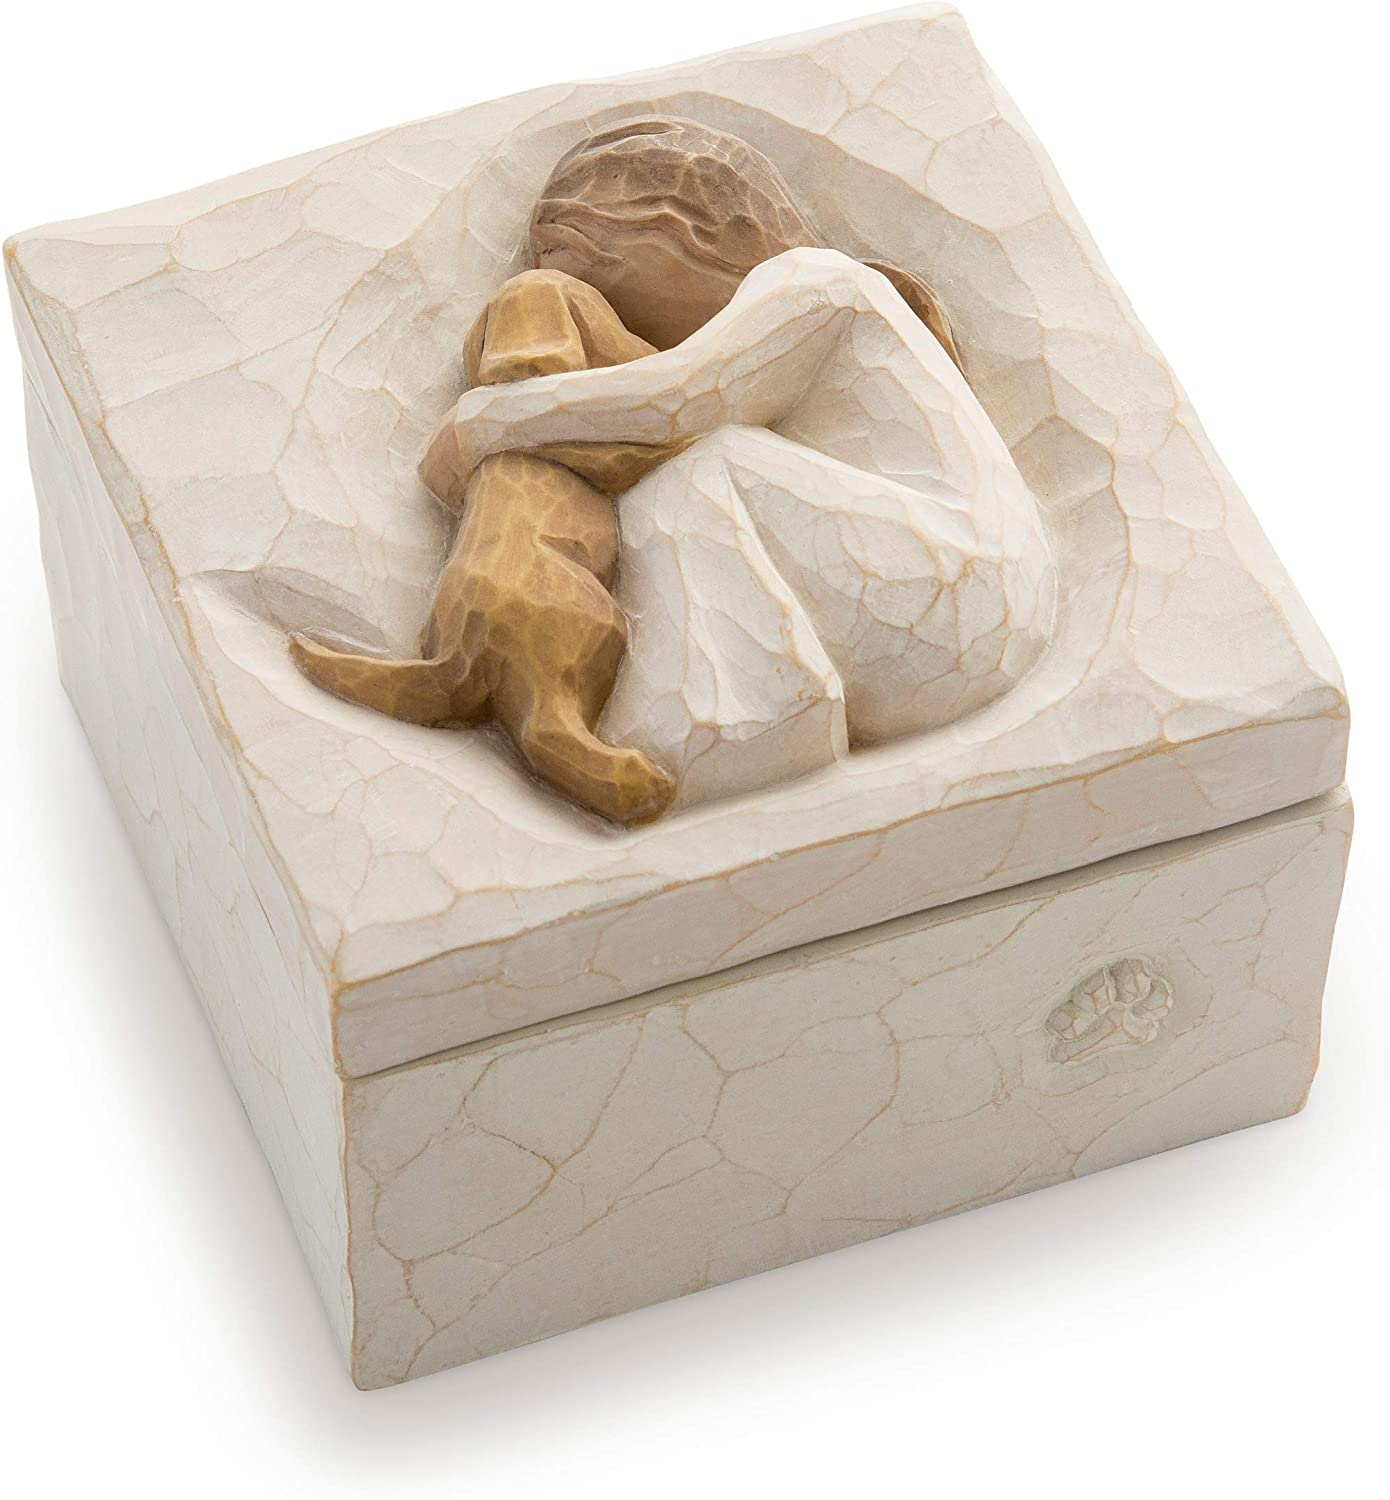 Willow Tree True, Sculpted Hand-Painted Keepsake Box